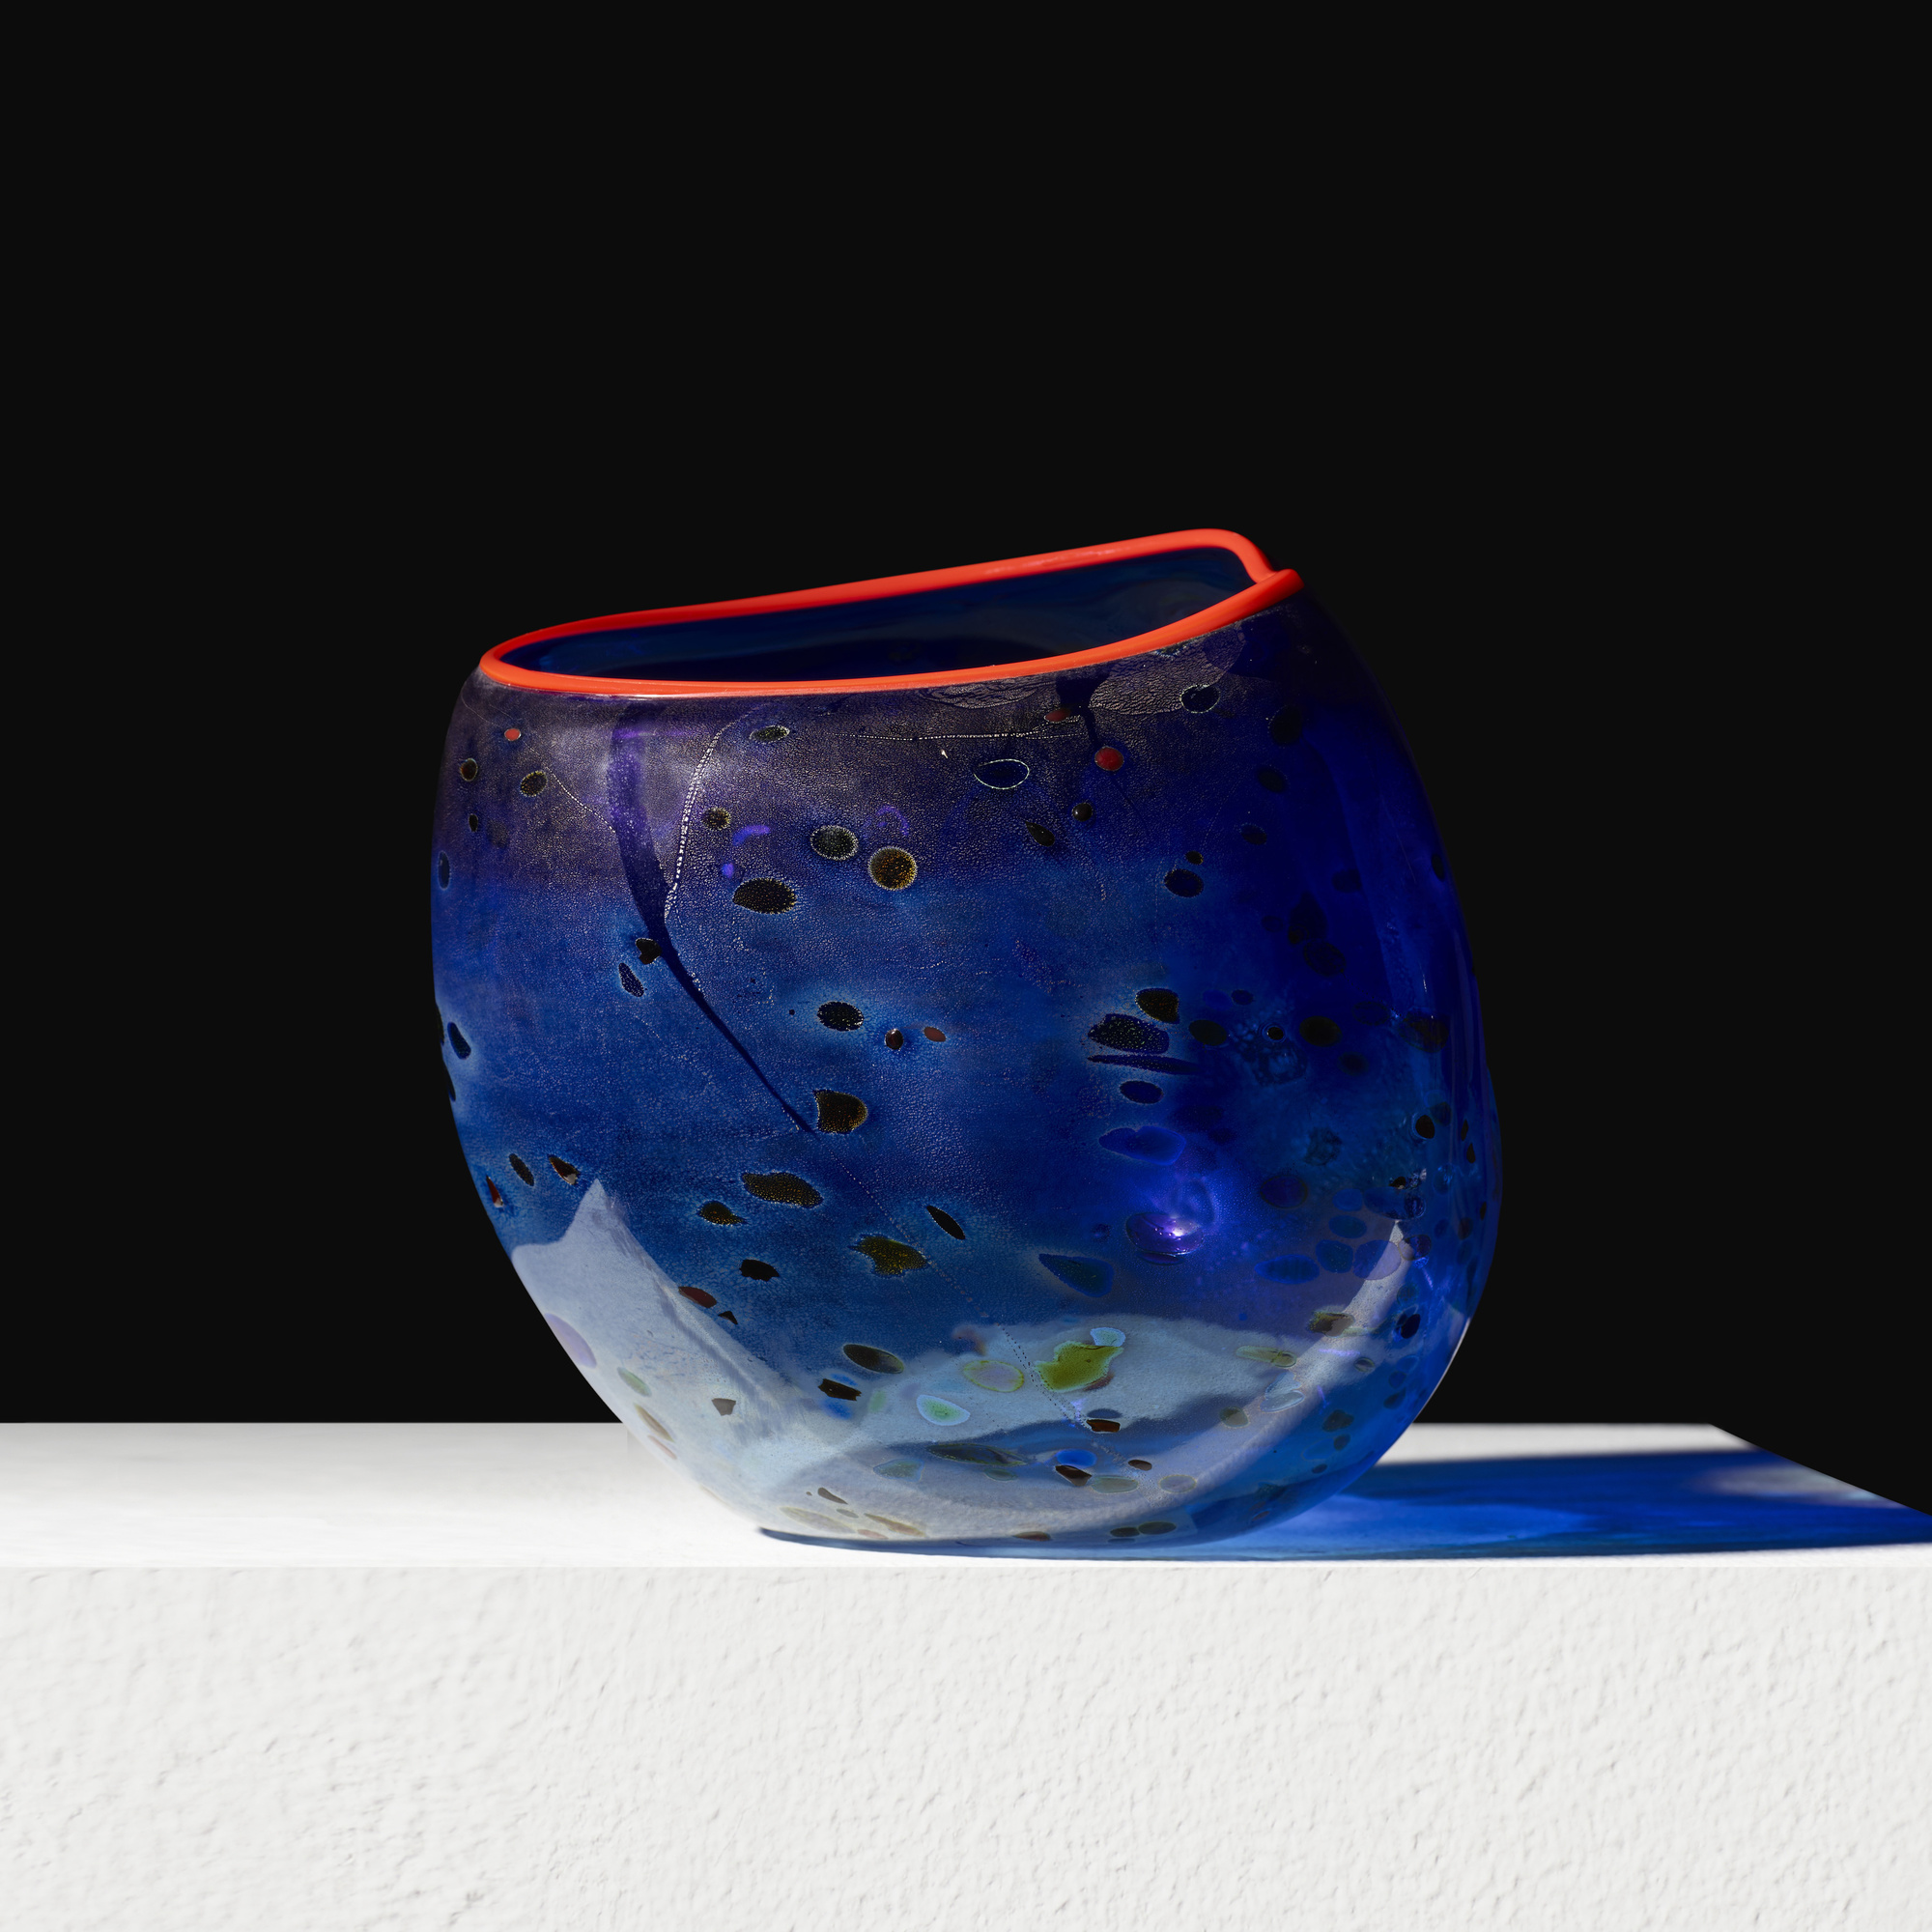 257: Dale Chihuly / Cobalt Blue Basket with Red Lip Wrap (1 of 3)